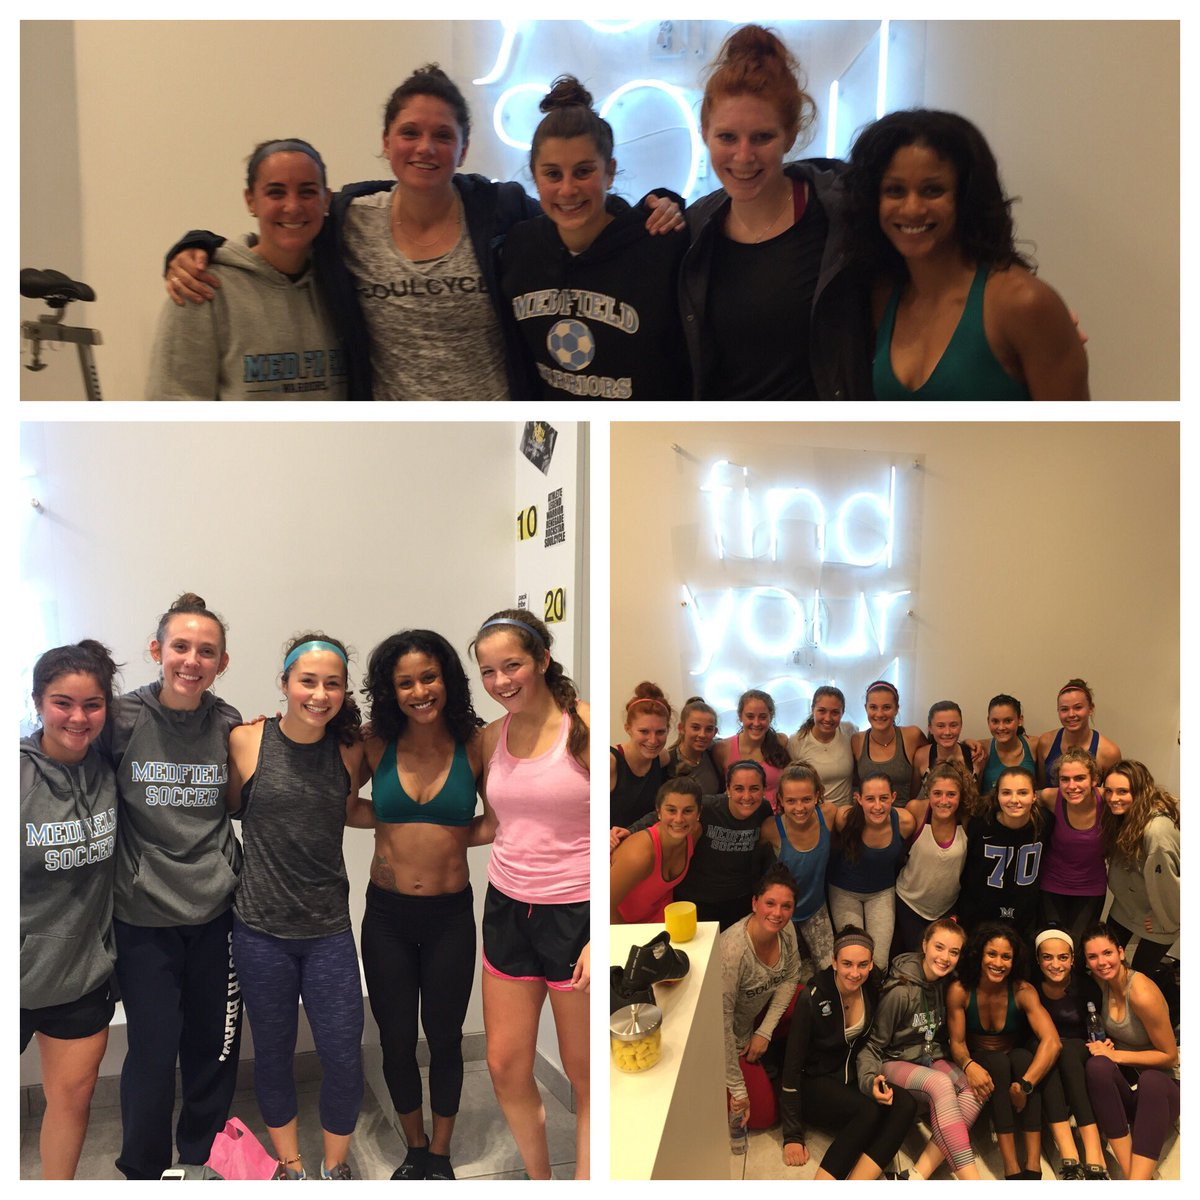 Thank you #SoulCycle &amp; Ashley E and Ashley M for an amazing ride! #keshavsmiley #medsoc17  #iamproudofwhoiam #ihadtolearnhowtofightformyself<br>http://pic.twitter.com/6Lf6e2pW0J